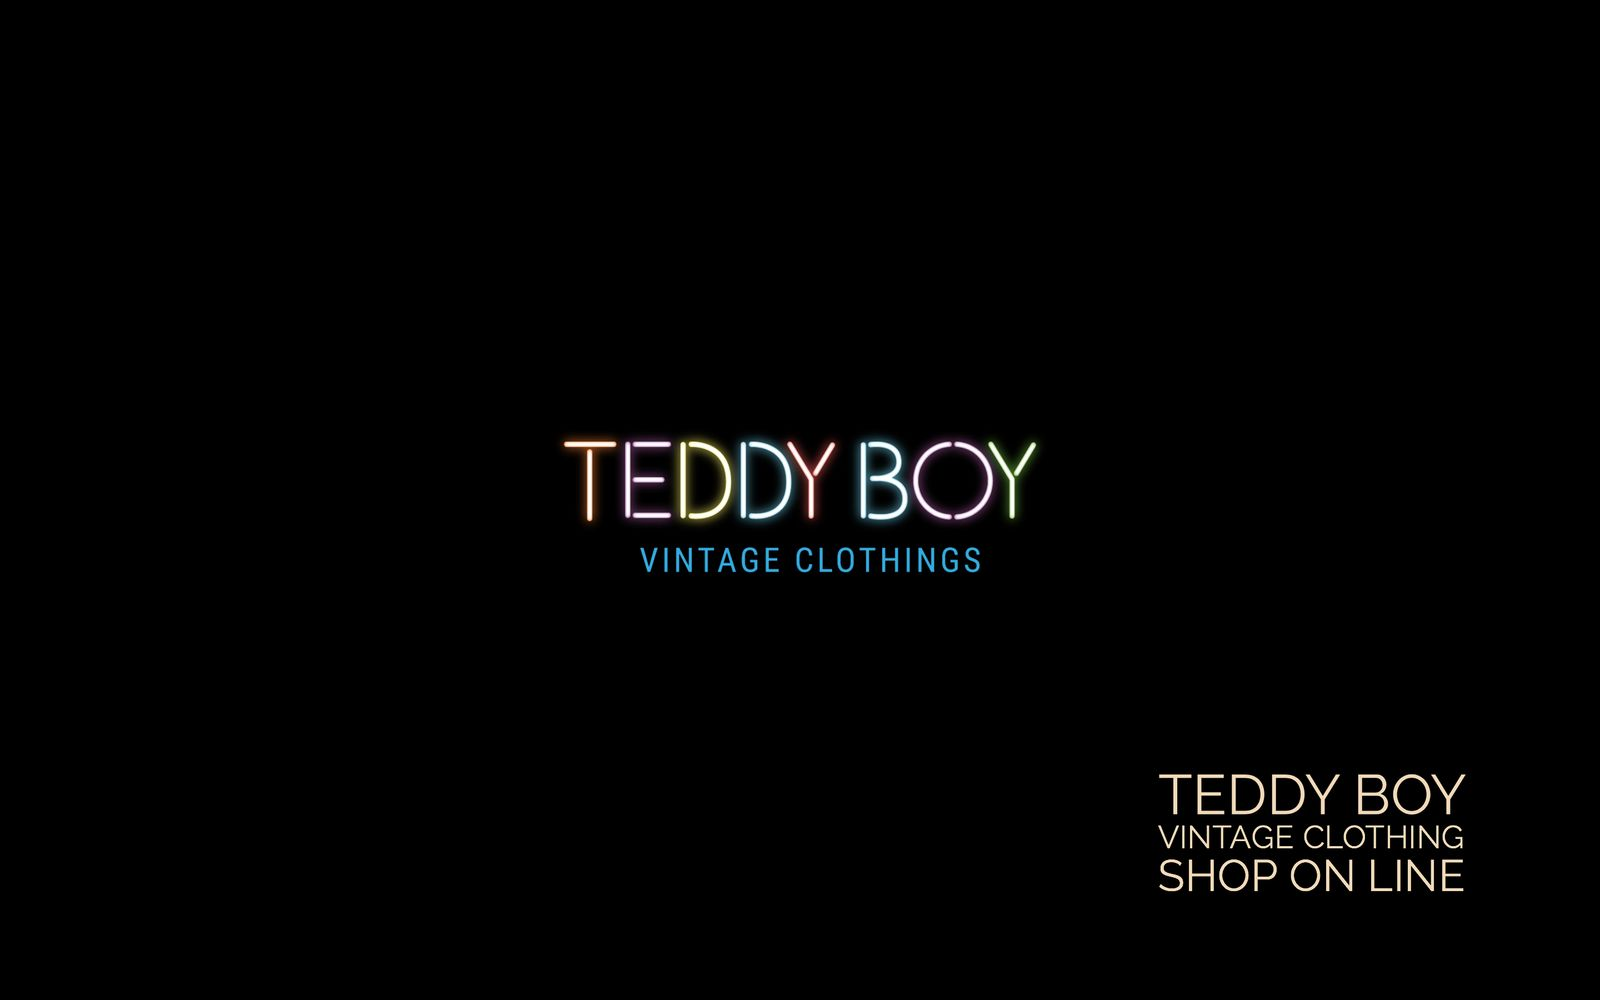 Teddy Boy-Vintage Clothings-Shop on line-realizzazione e-commerce